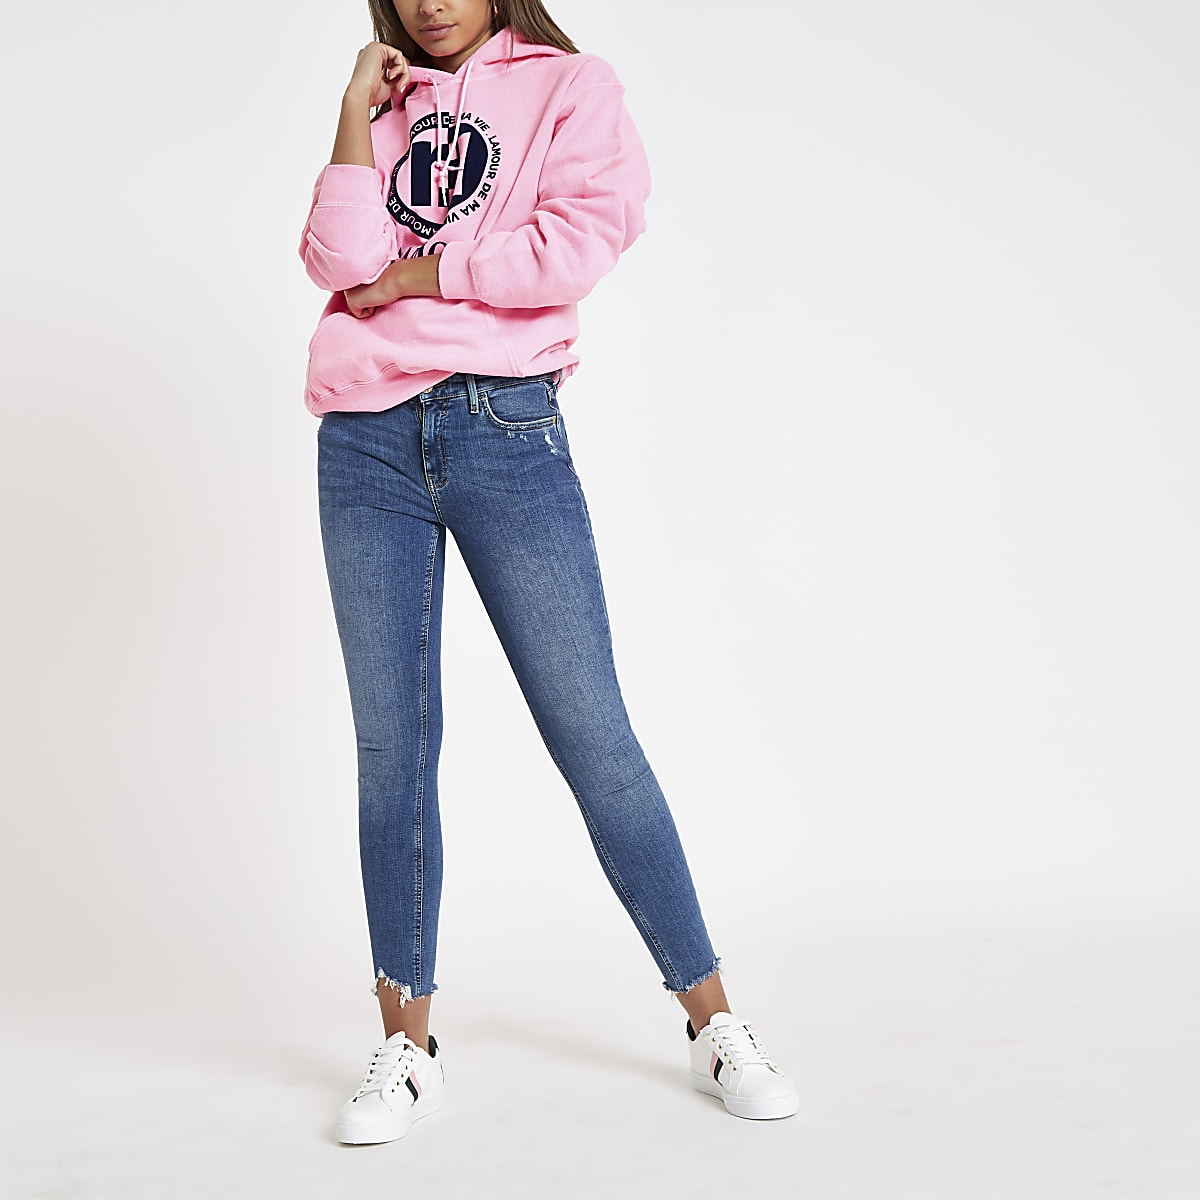 c01be12c0 Pink fluroscent  L amour  print hoodie - Hoodies   Sweatshirts - Tops -  women